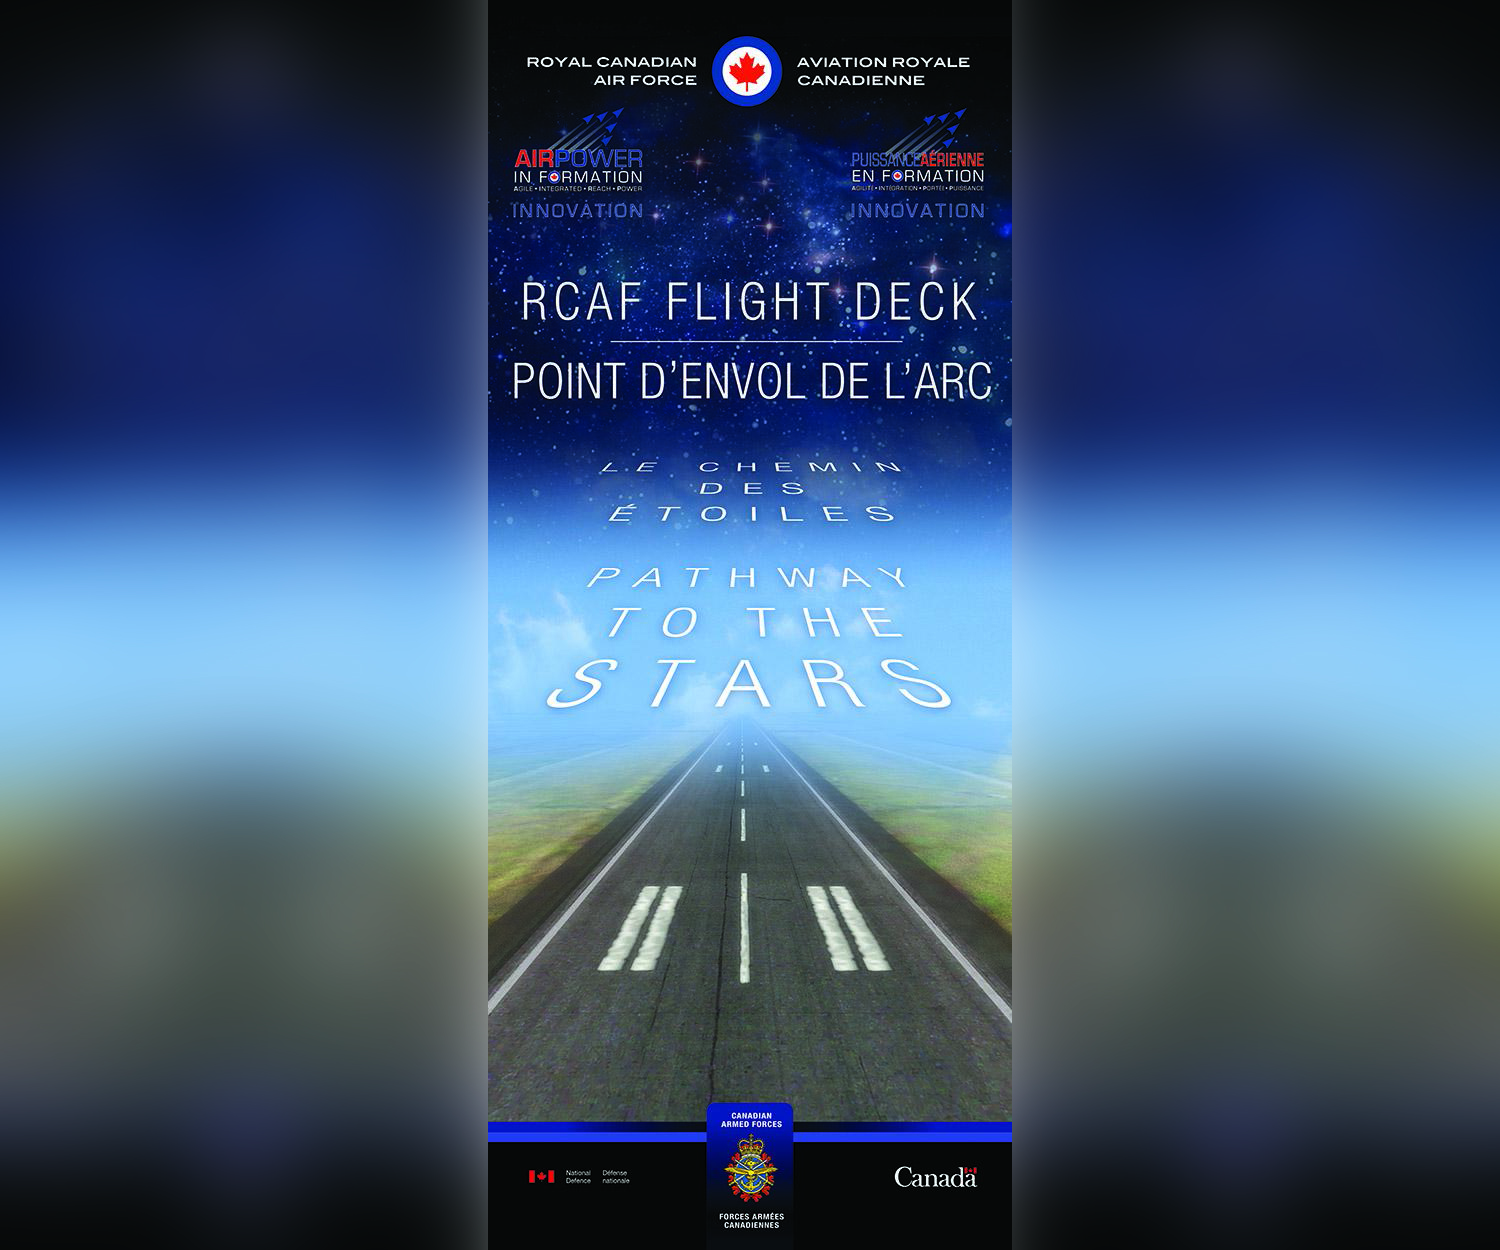 "The Royal Canadian Air Force places a high value on innovation and creating an innovative mindset. To assist in this, the RCAF has created a presence called the ""Flight Deck"" at the Communitech innovation hub in the Waterloo Region of Ontario. IMAGE: RCAF"